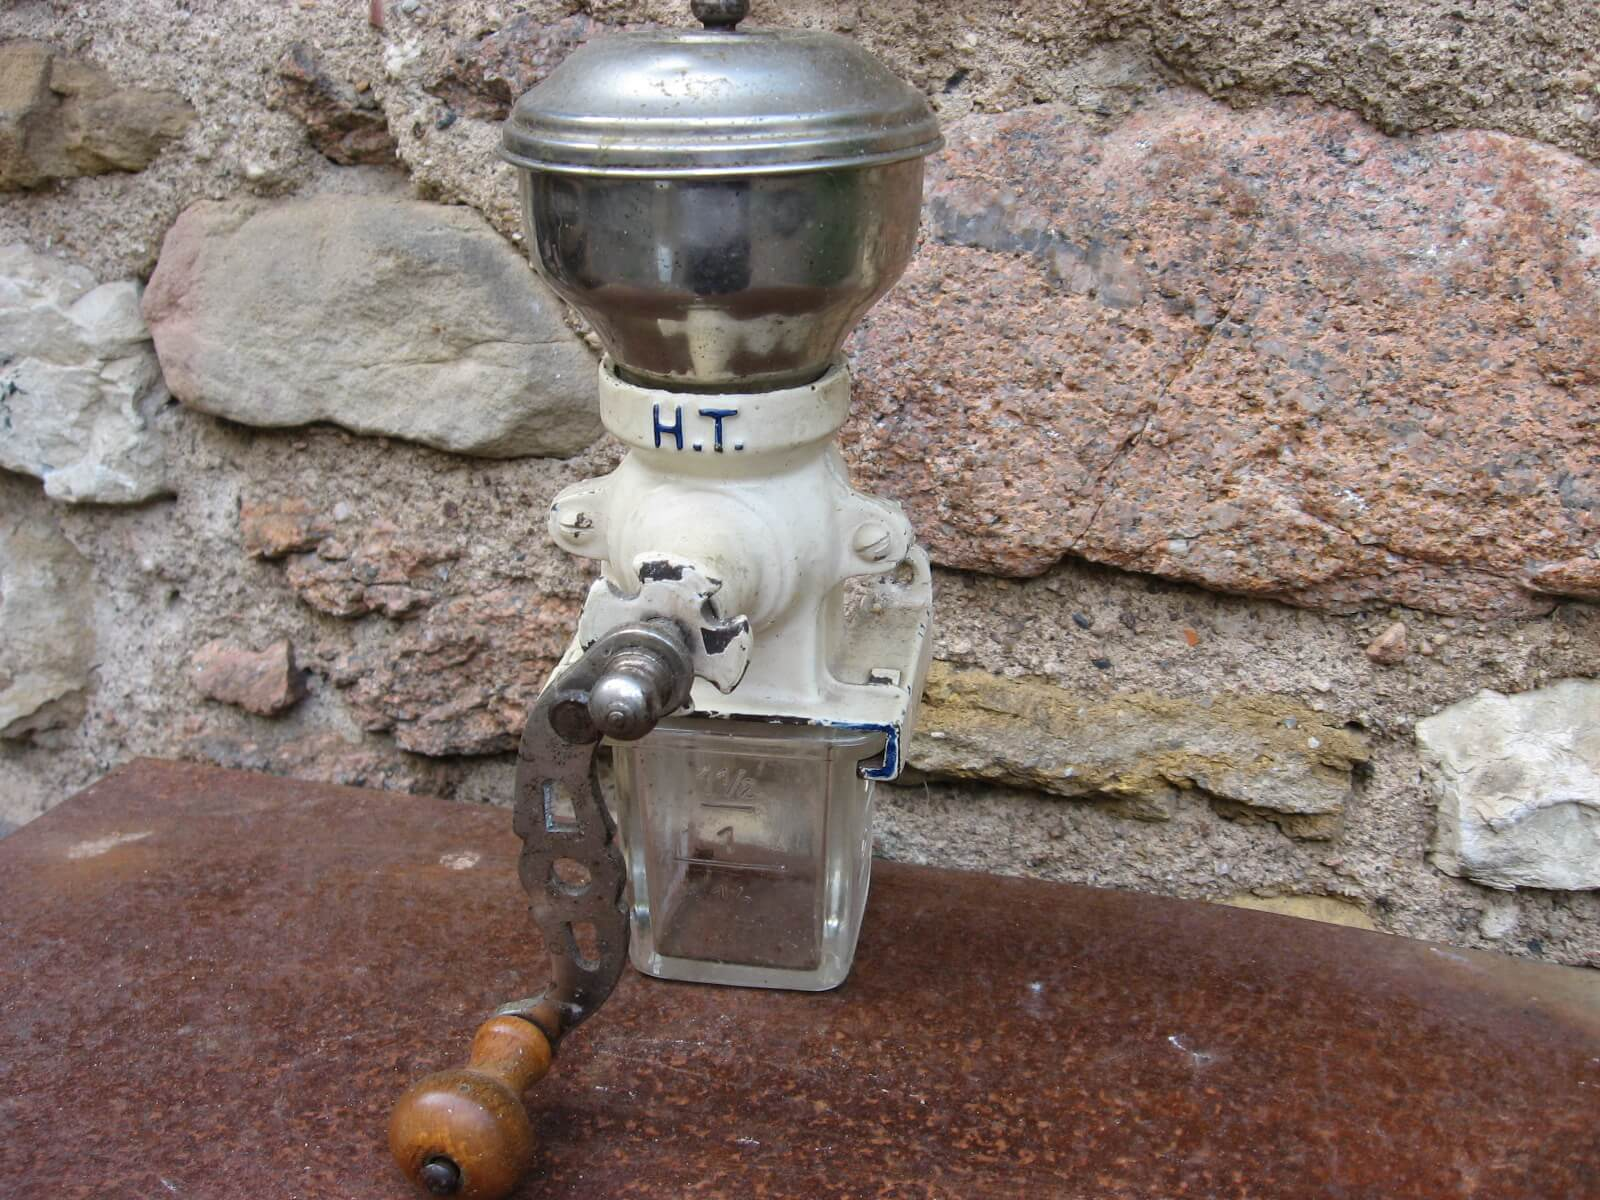 HT Armin Trosser wall mounted coffee grinrder 1930 at PumpjackPiddlewick